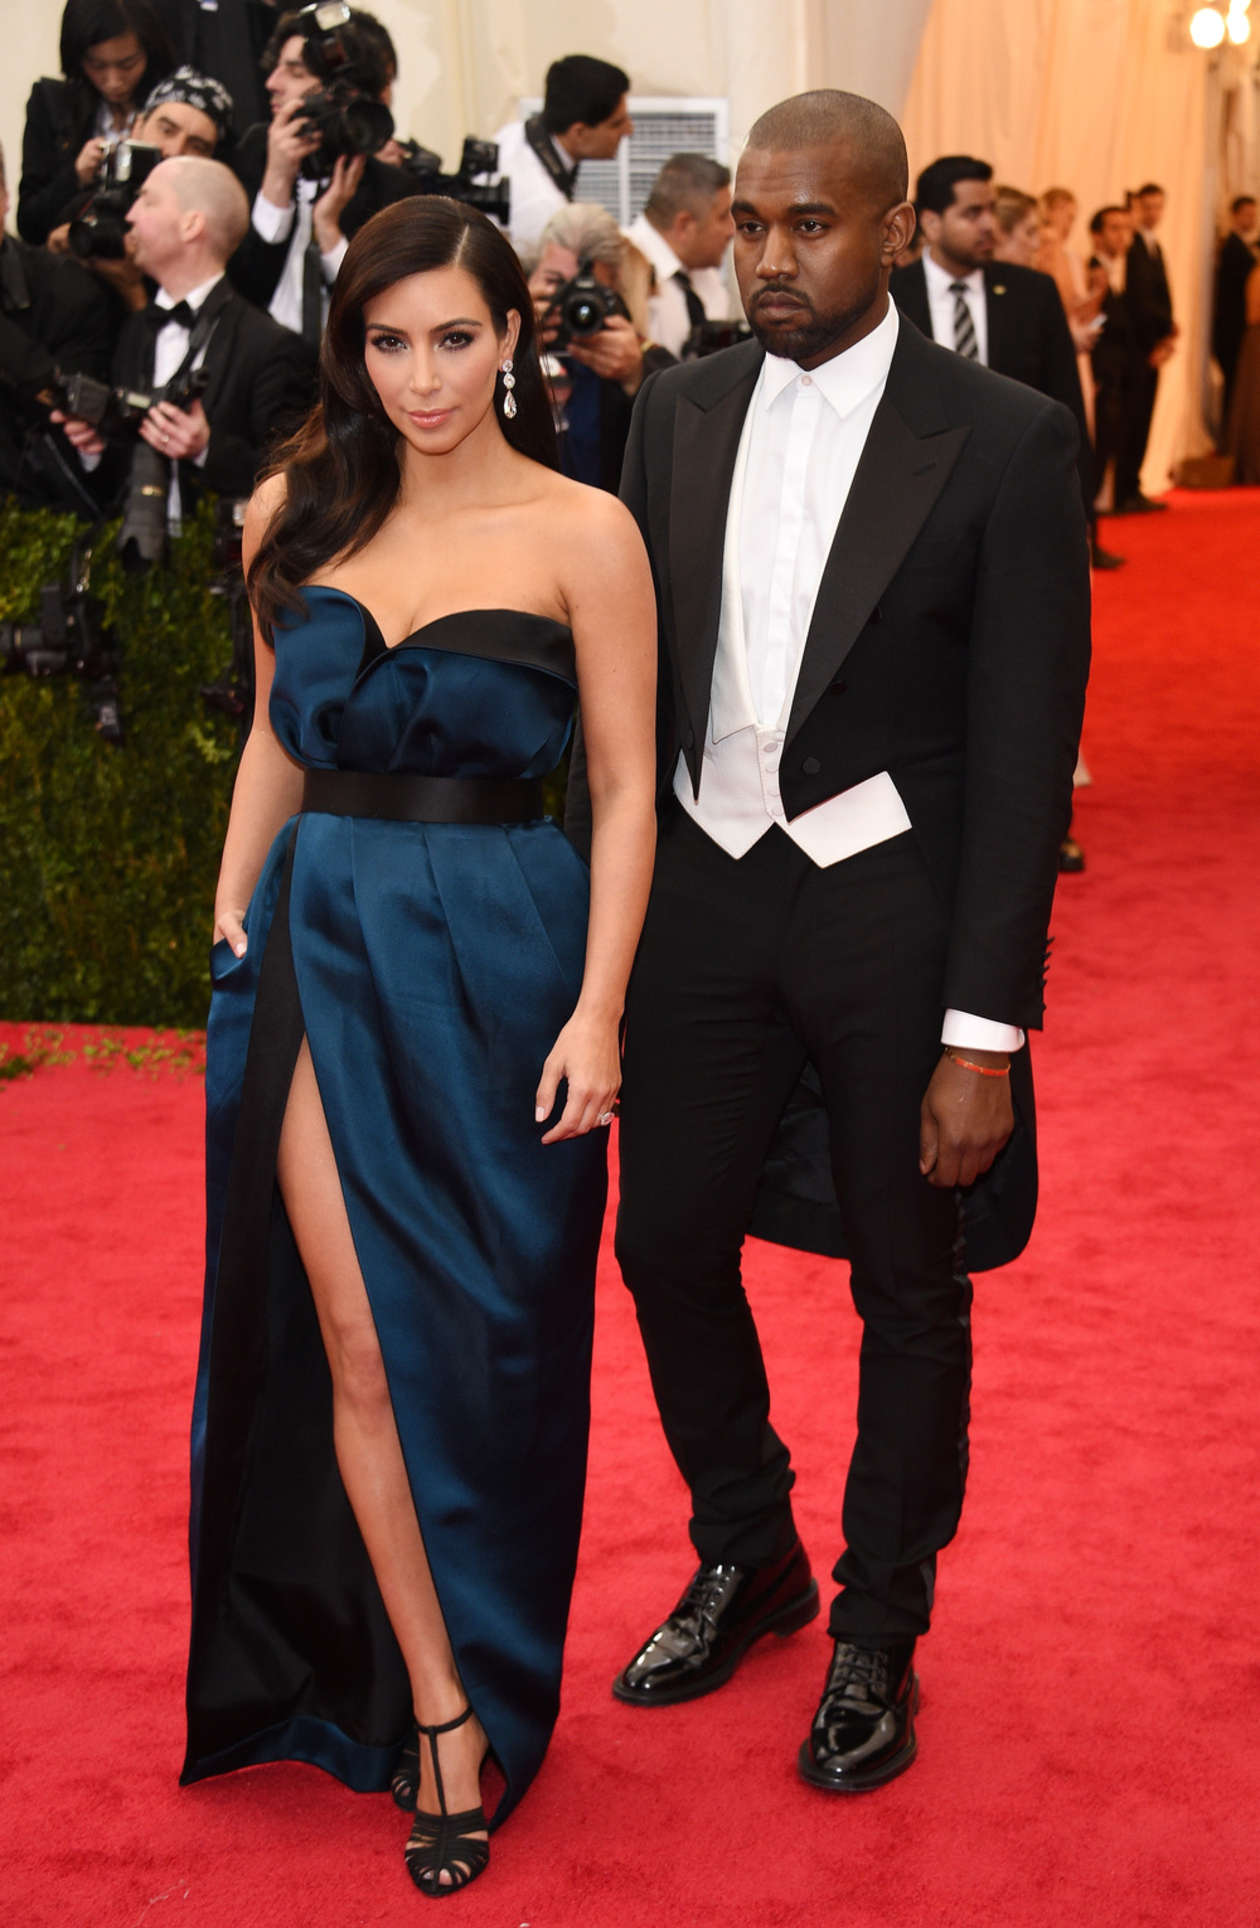 Kanye West Wants to Build a Cathedral For Kim Kardashian — Report